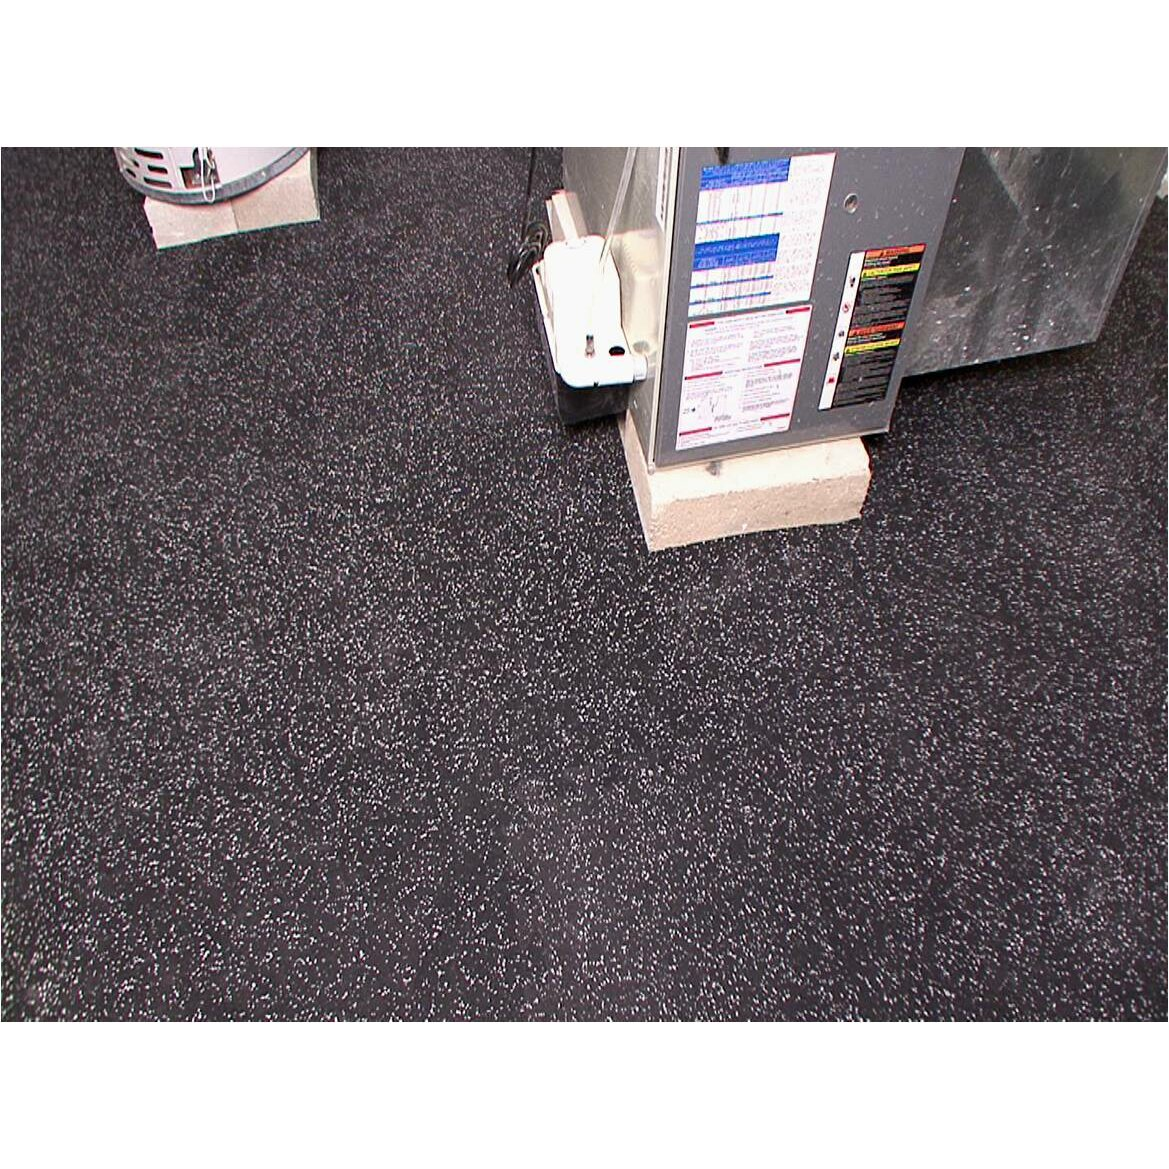 Rubber floor mats workout - Mats Inc Sports Flooring Interlocking Recycled Rubber Tiles